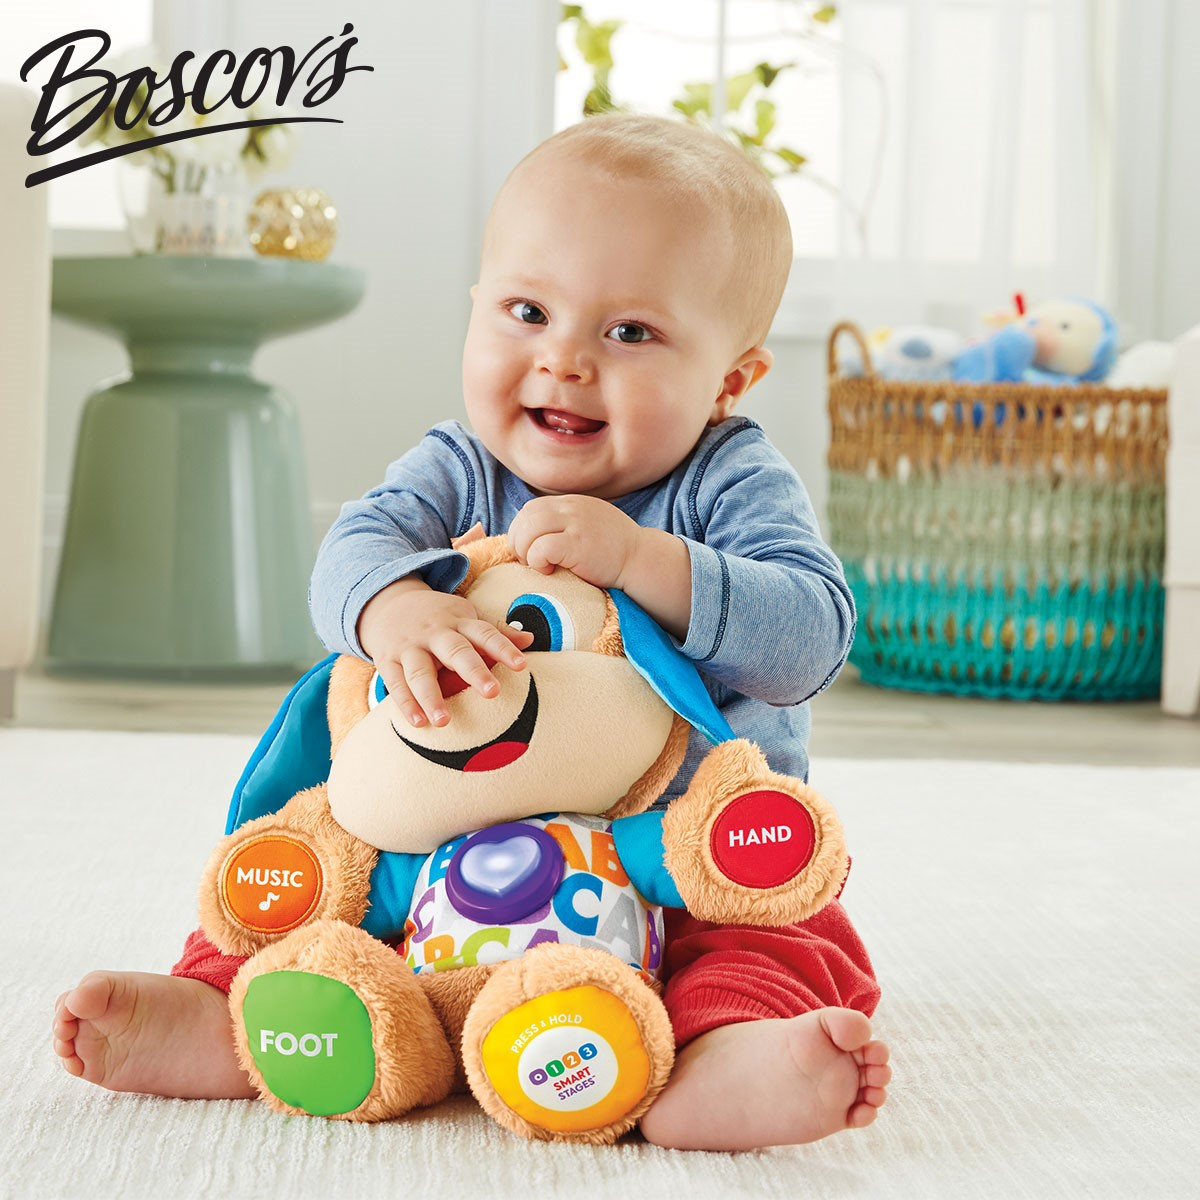 Toy Sale from Boscov's